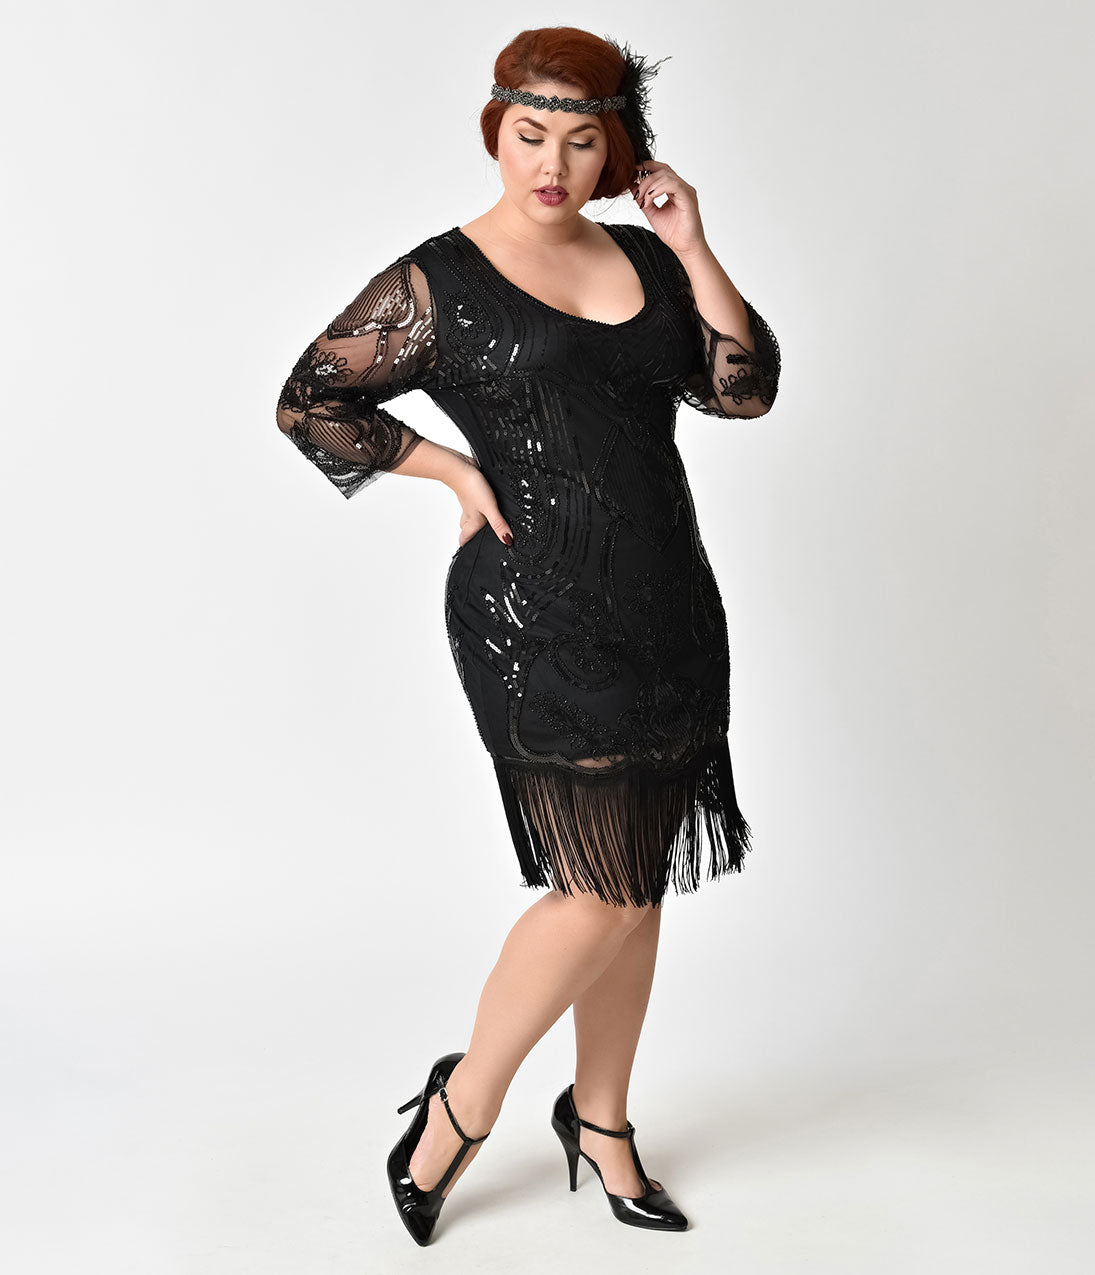 Flapper Costume: How to Dress Like a 20s Flapper Girl Unique Vintage Plus Size Black Beaded  Sequin Margaux Sleeved Fringe Flapper Dress $110.00 AT vintagedancer.com